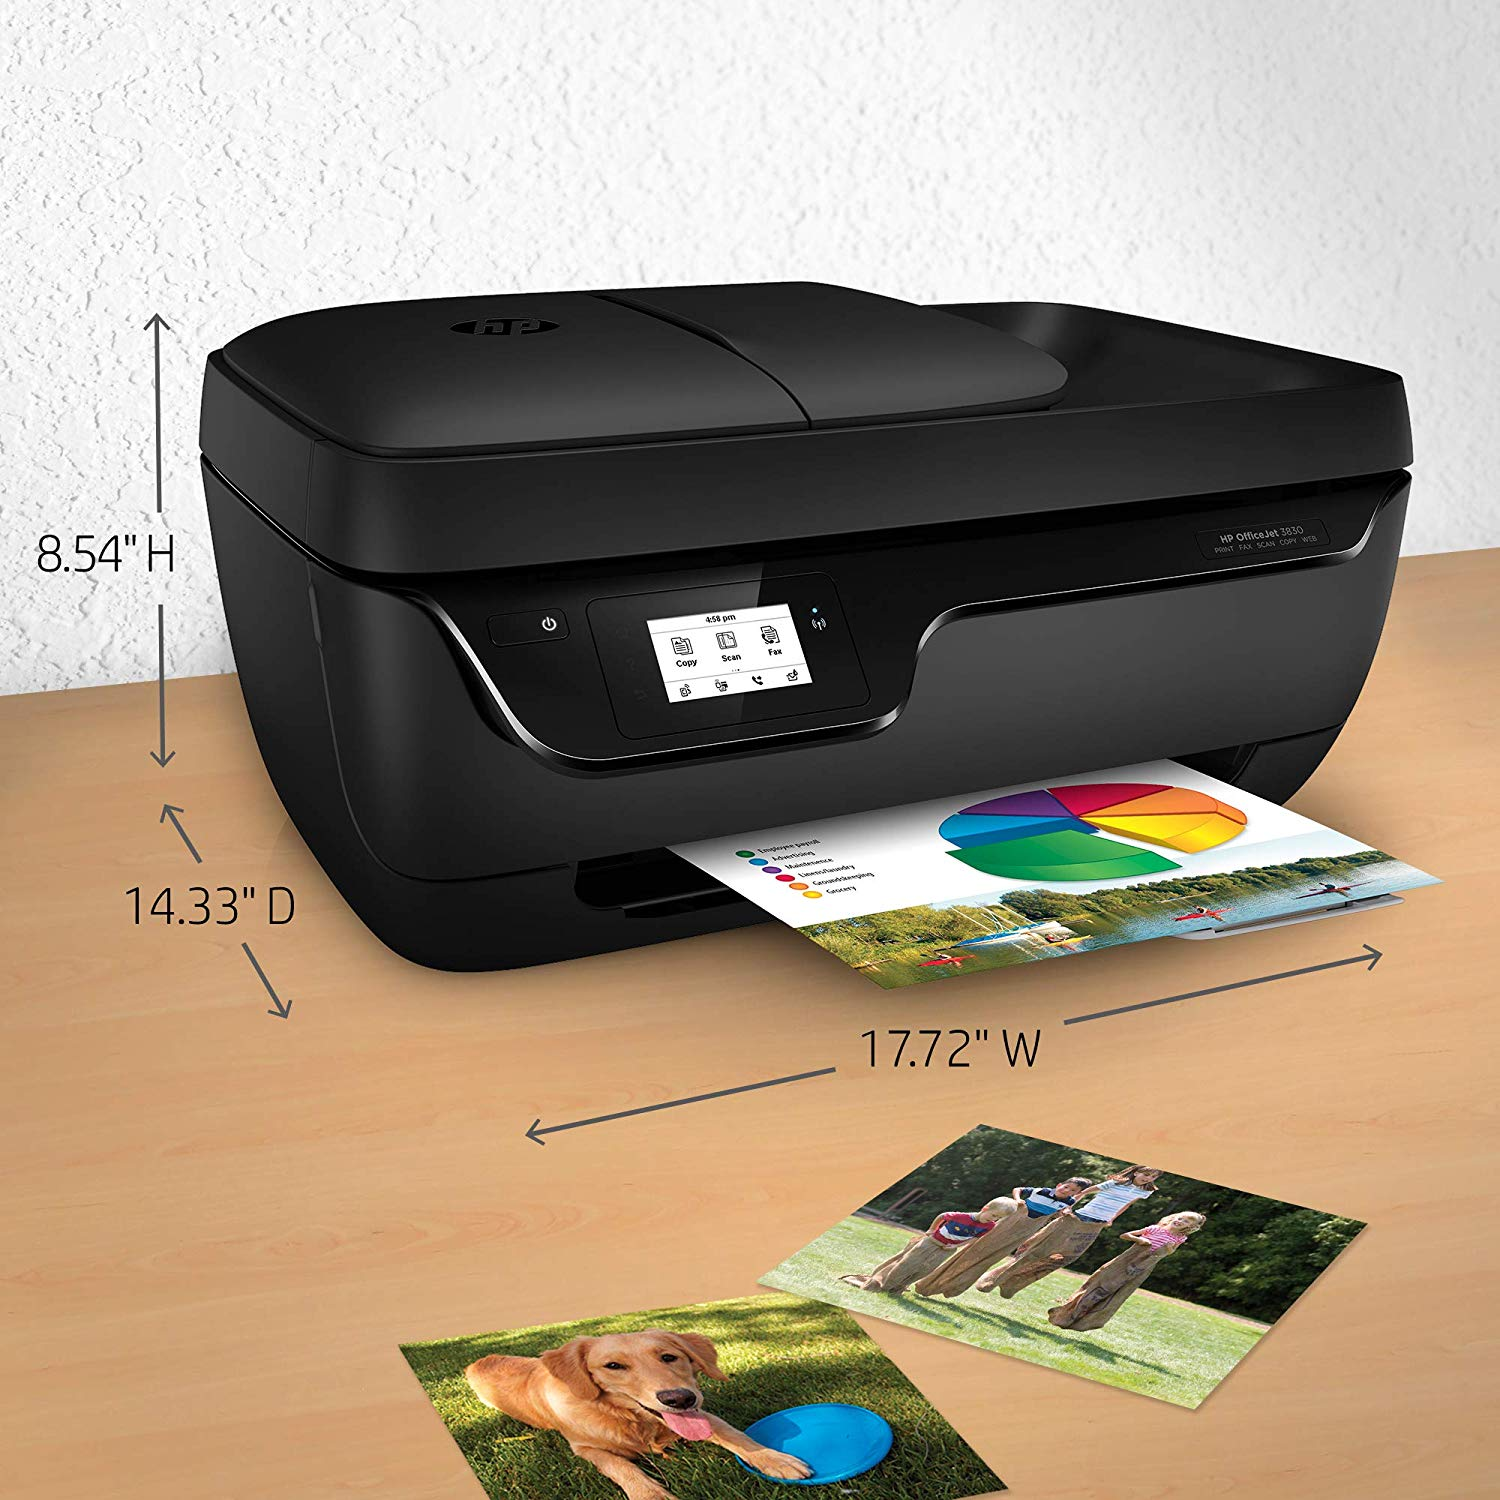 HP OfficeJet 3830 All-in-One Wireless Printer Mobile Printing